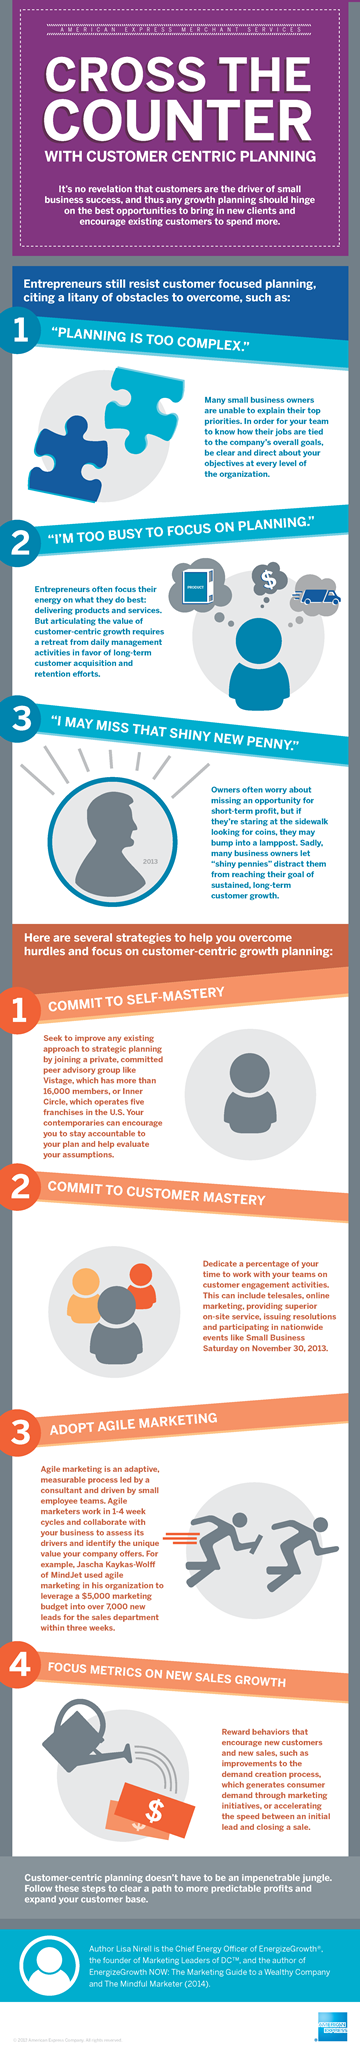 Infographic_cross_the_counter_with_customer_centric_planning